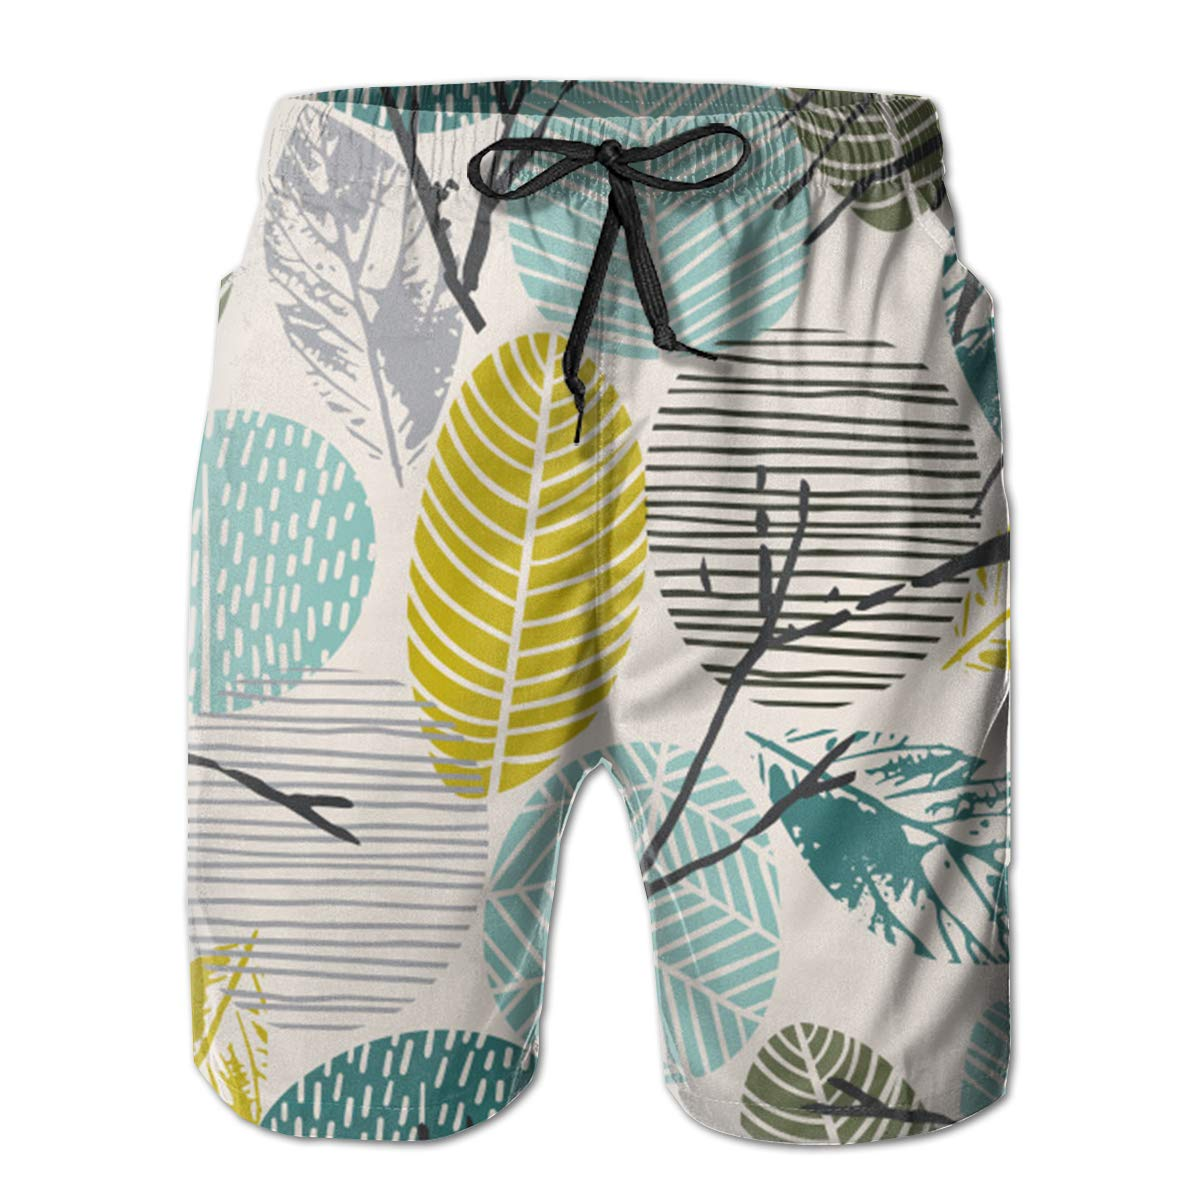 EYFlife Abstract Autumn Leaves Pattern Men/'s Beach Board Shorts Quick Dry Swim Truck Shorts